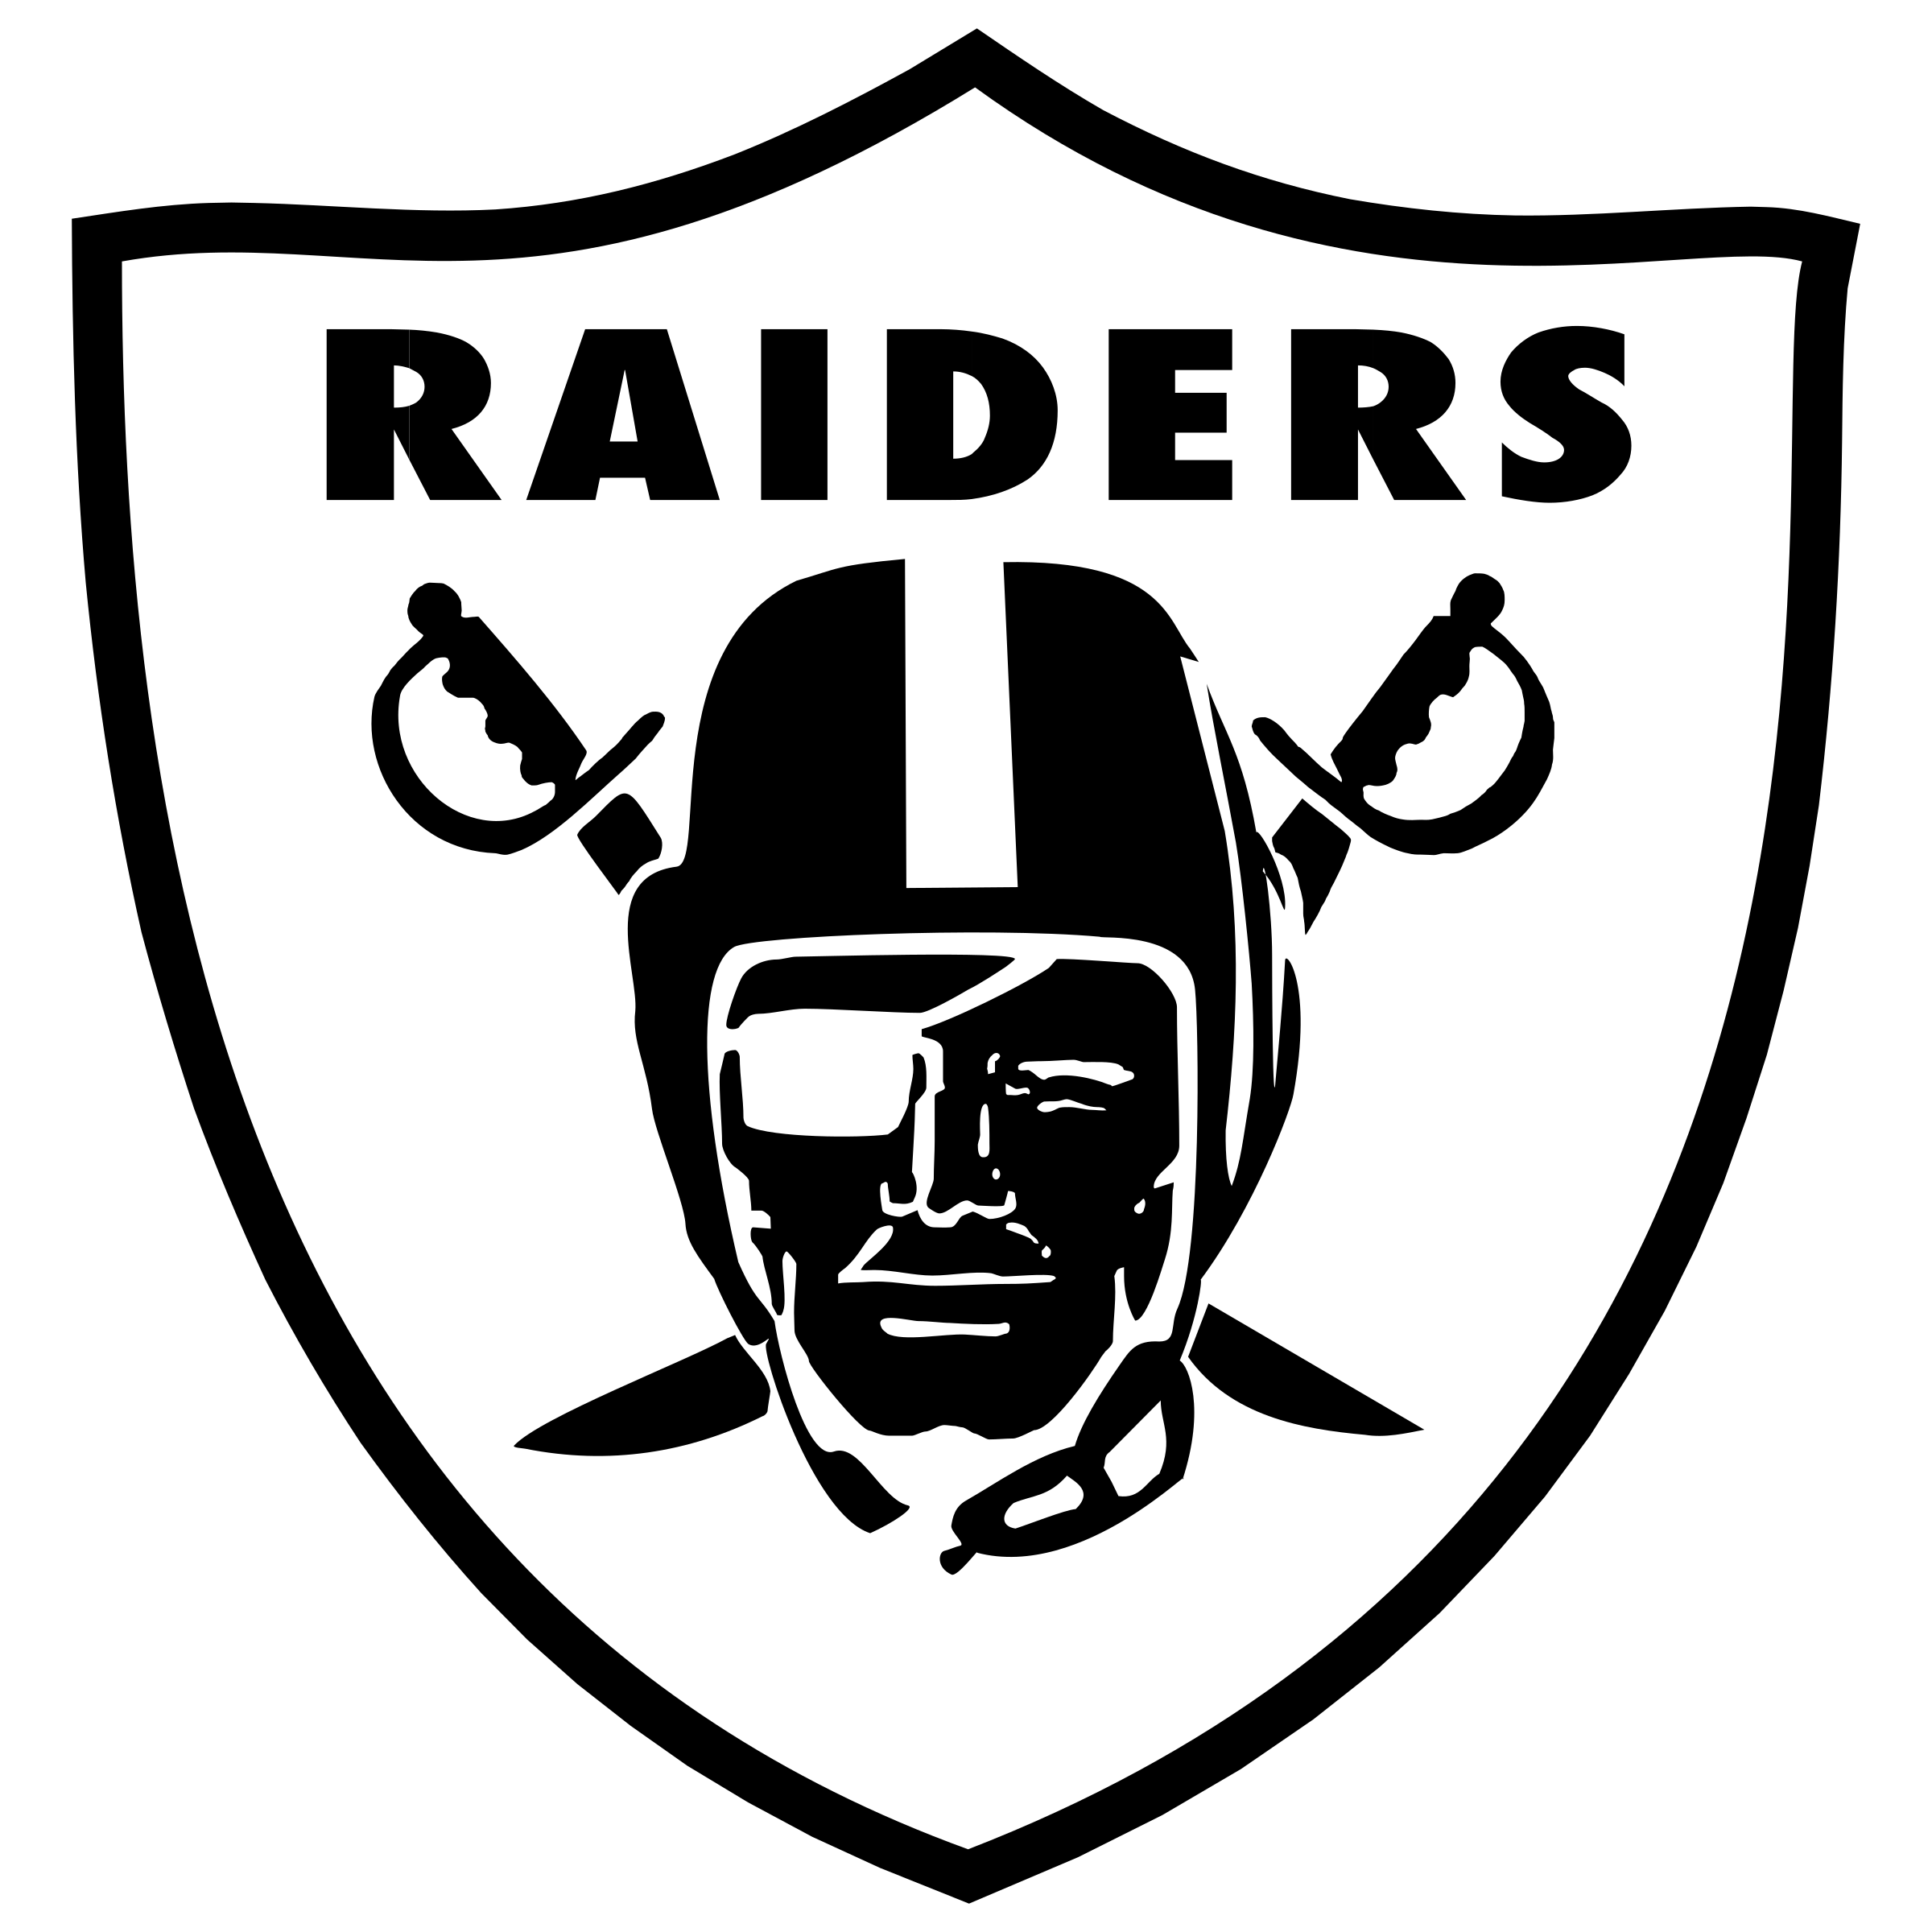 Raiders logo png. Transparent svg vector freebie